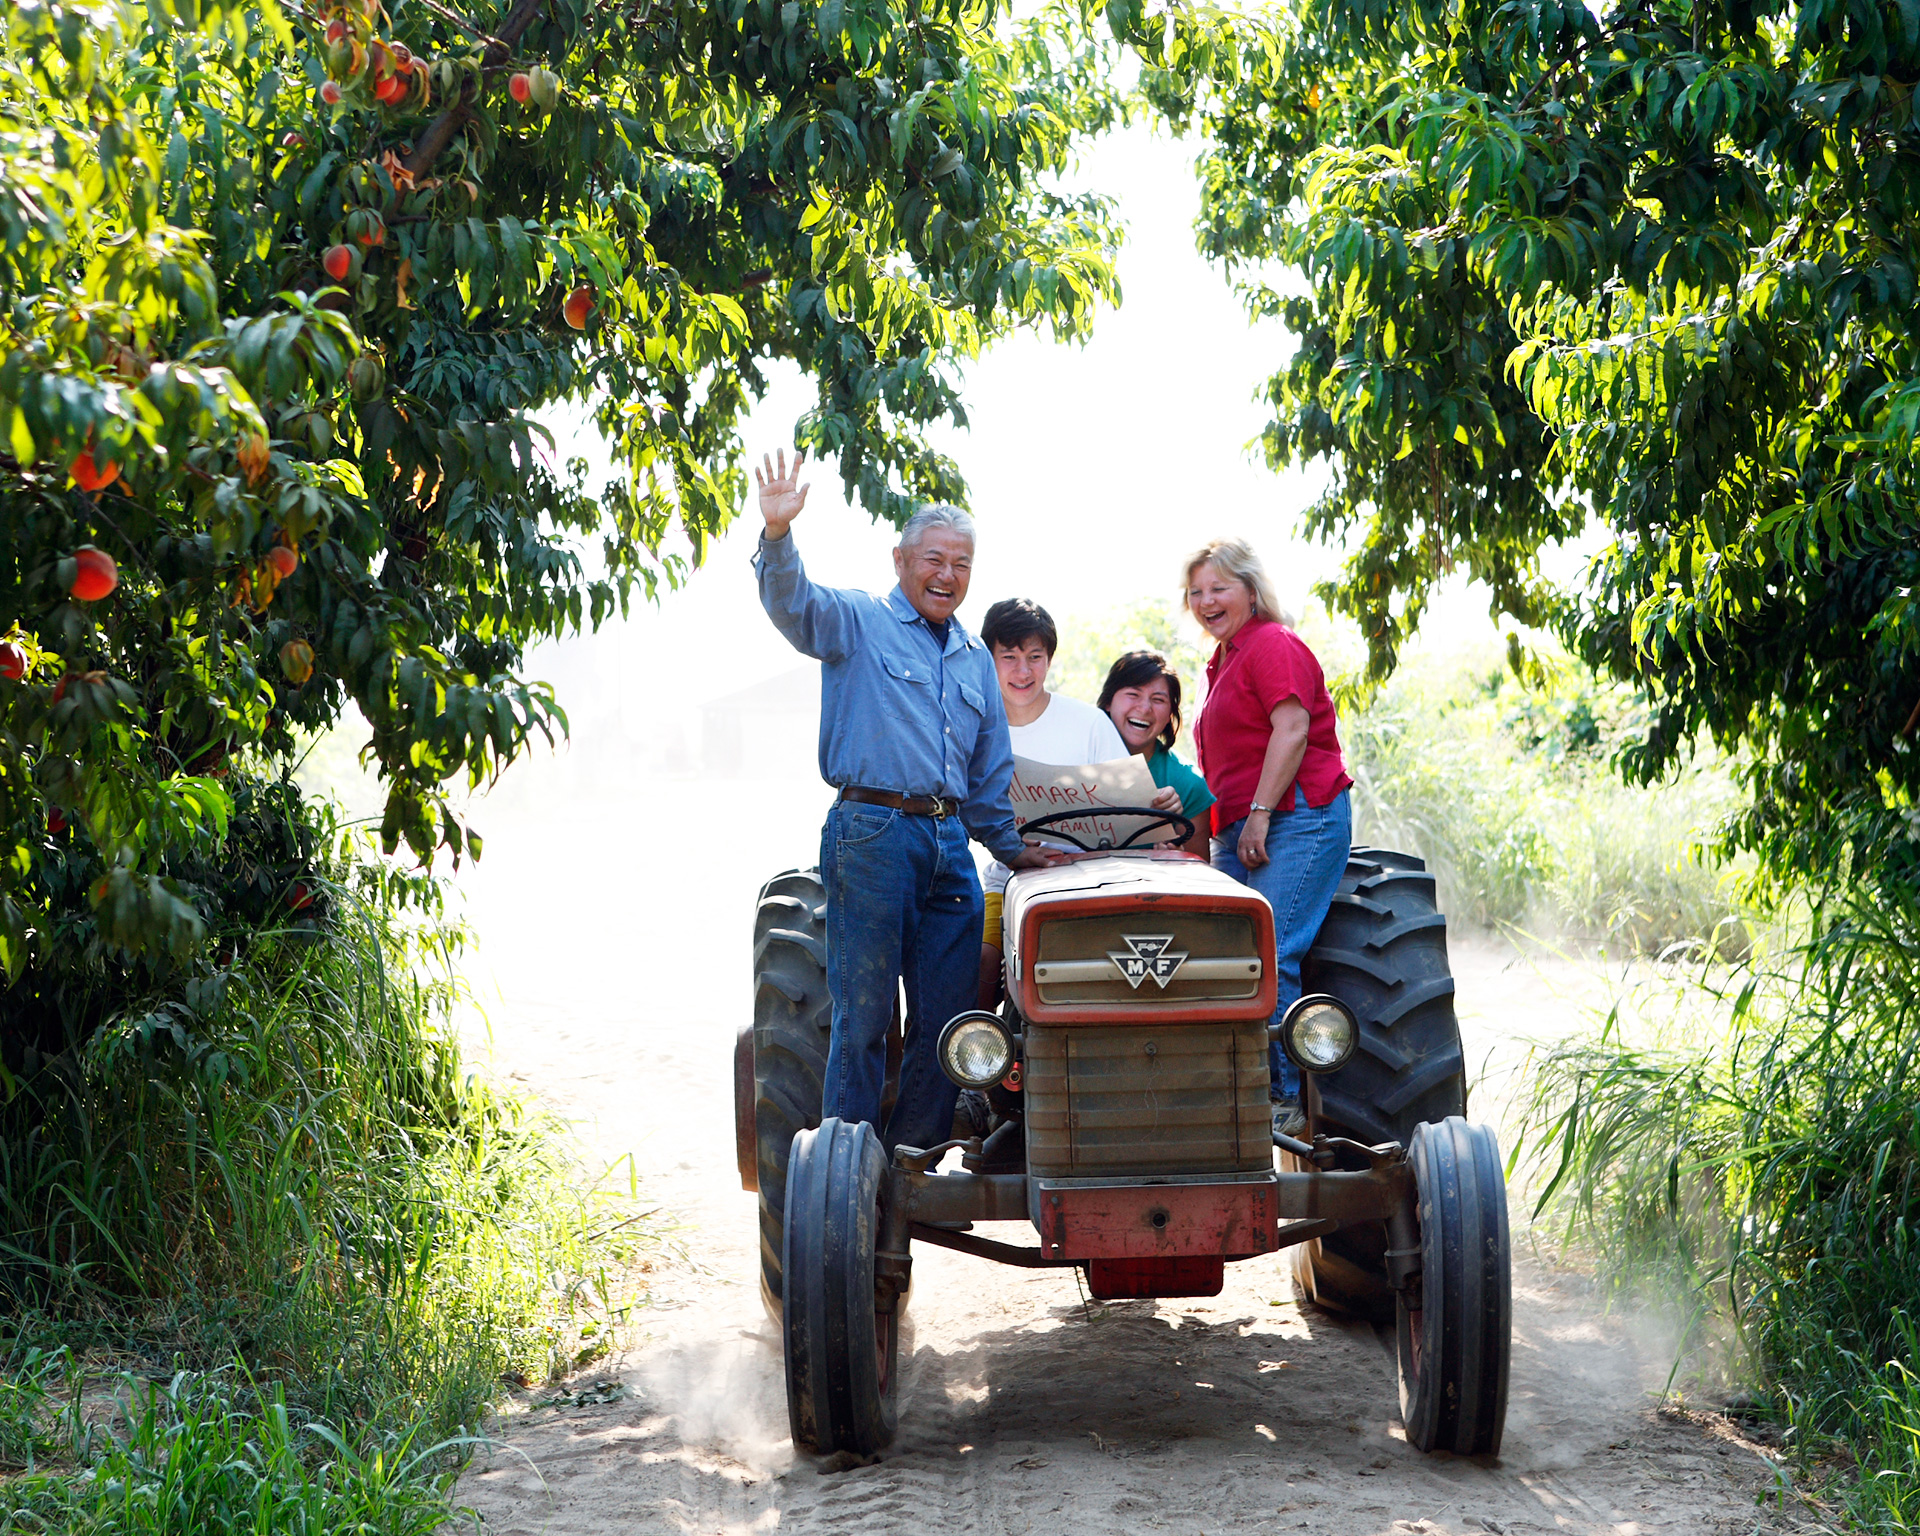 The Masumoto family farmers on a tractor in the Central Valley California peach farm